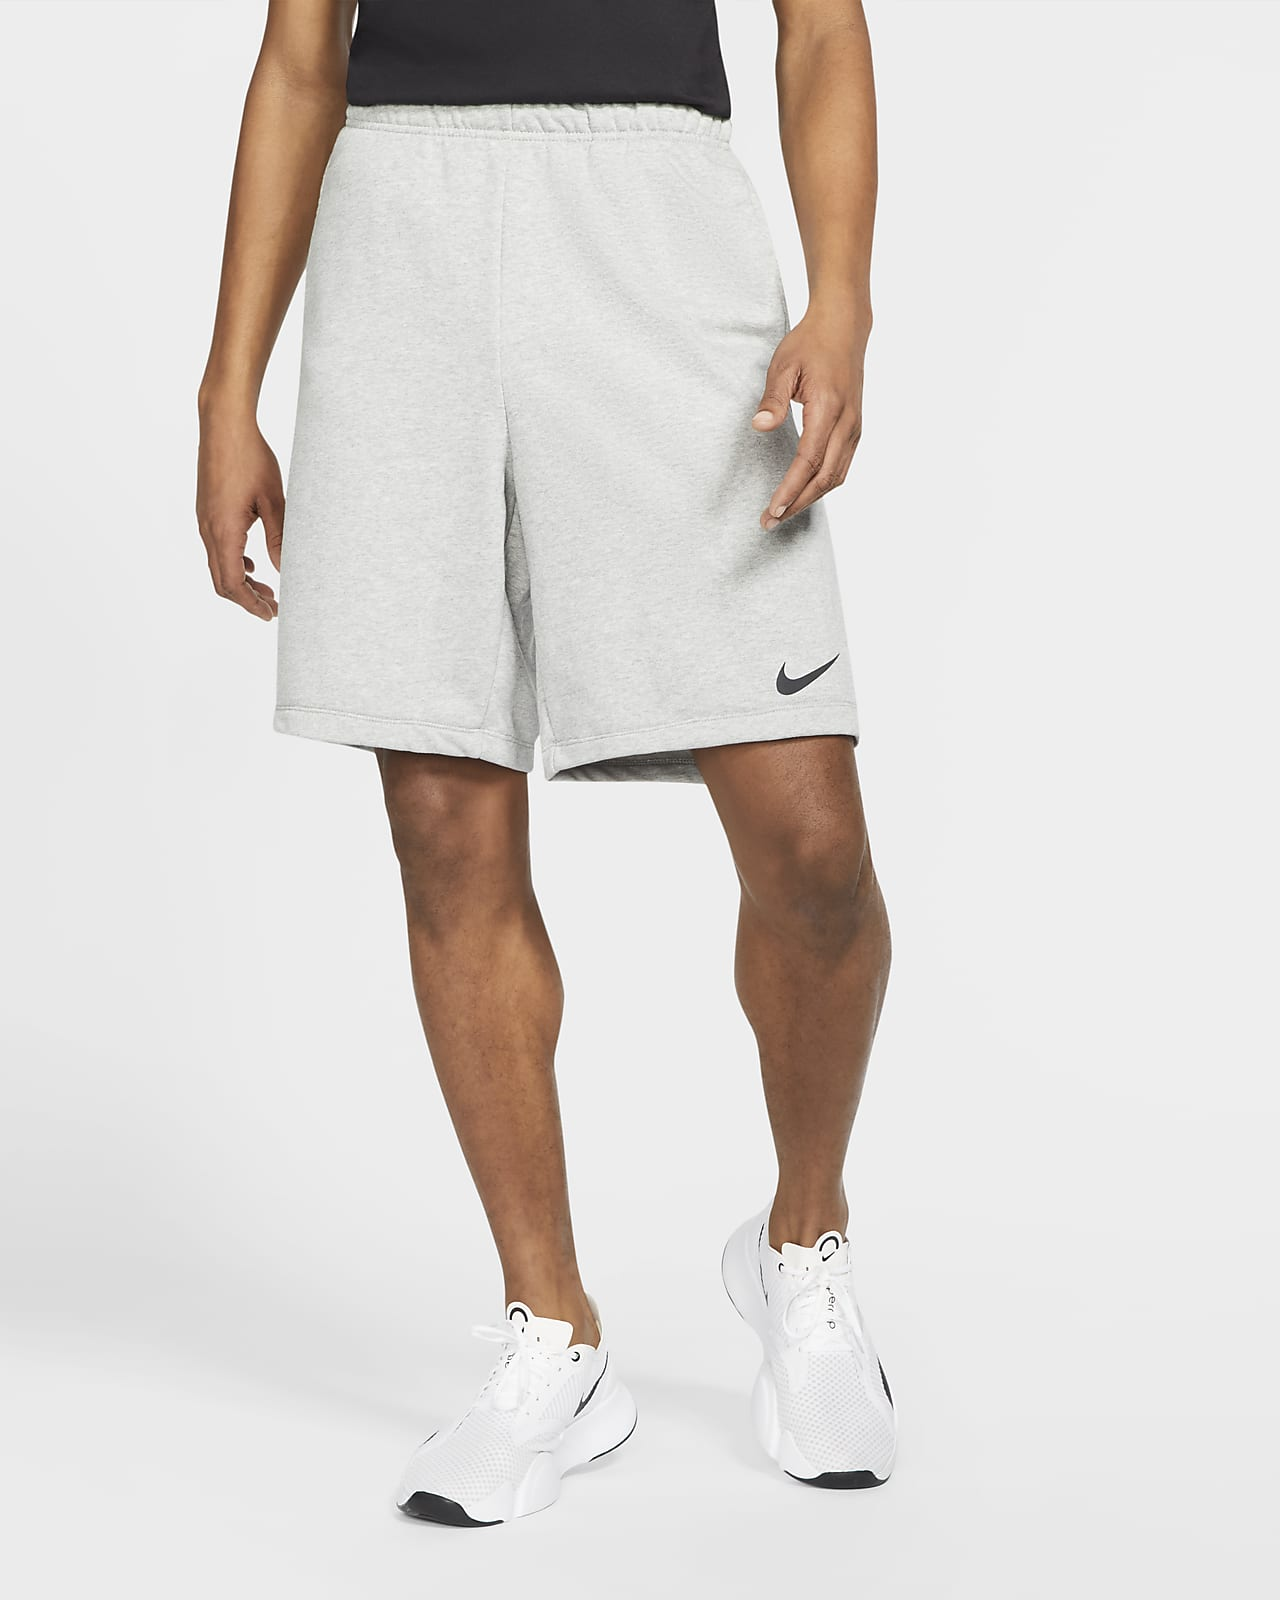 Nike Dri-FIT Pantalons curts d'entrenament - Home